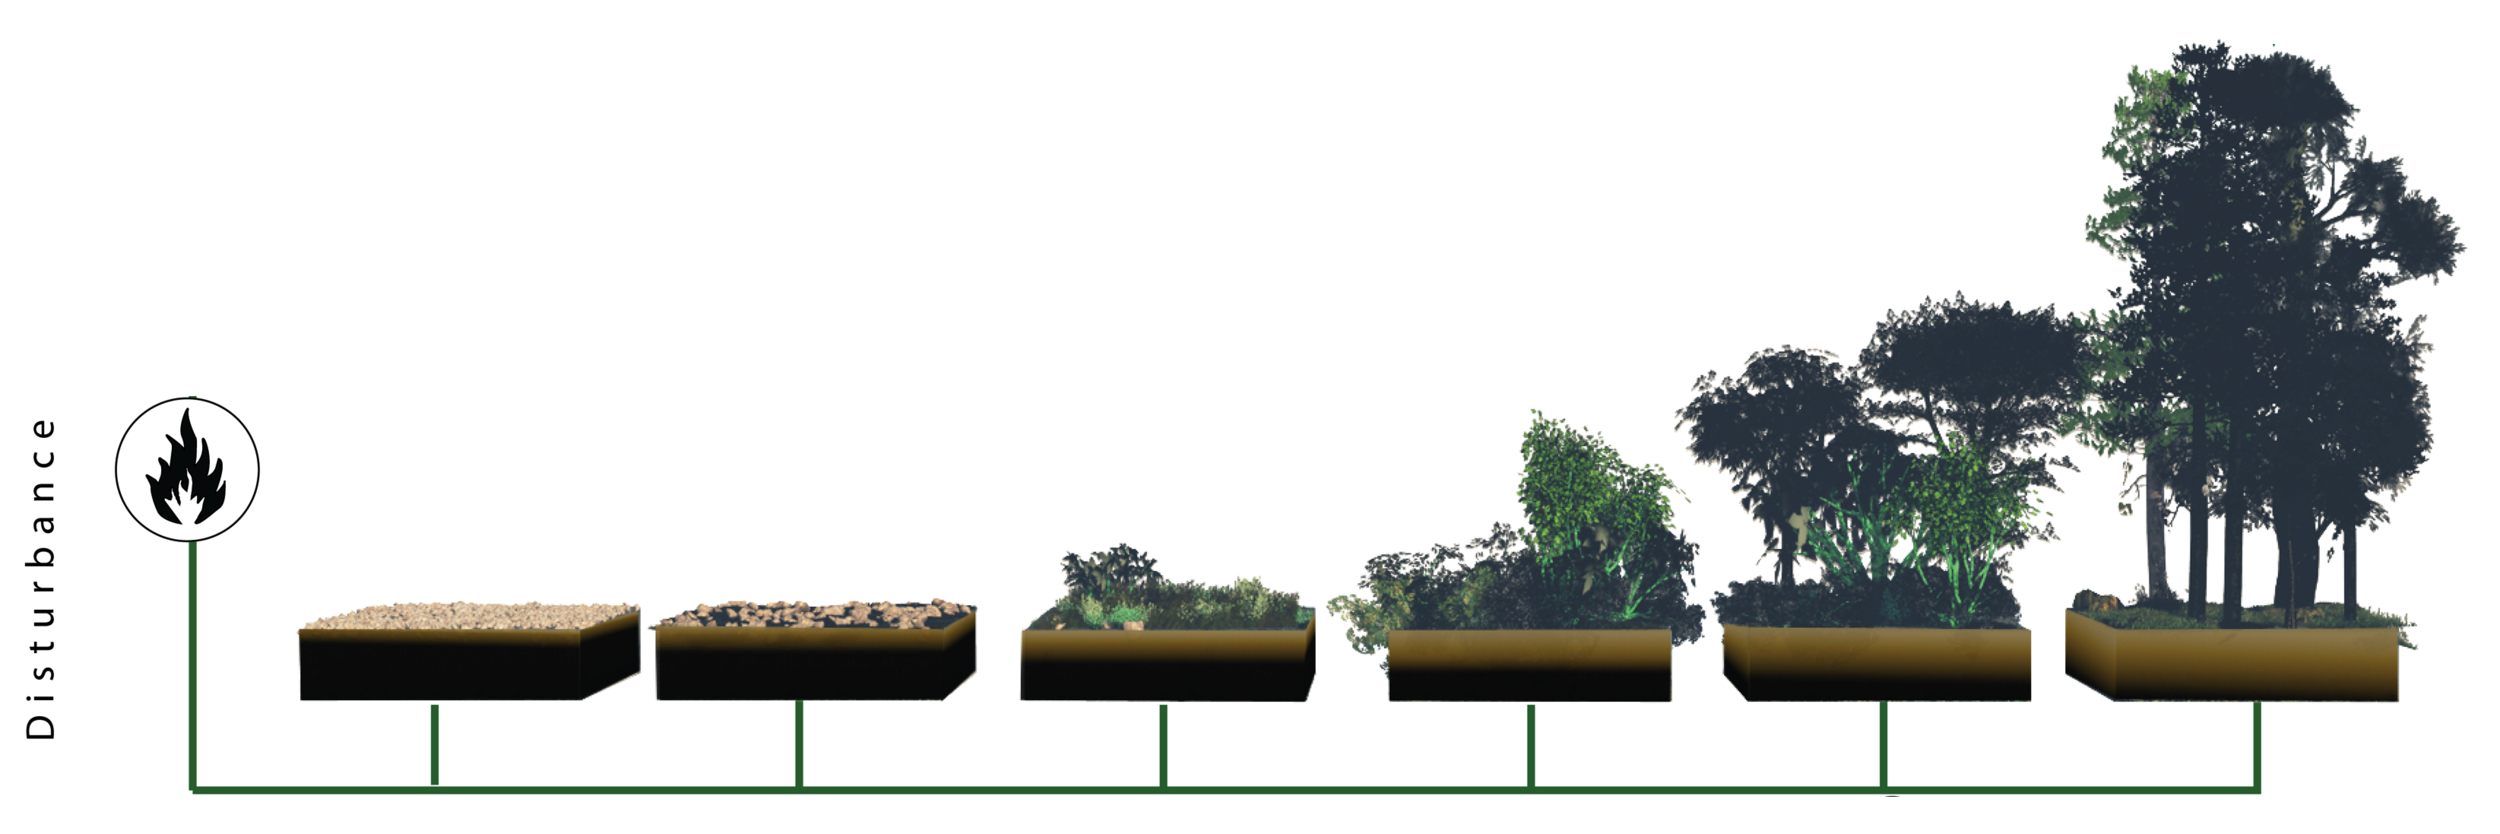 The Conventional View of Ecological Succession.